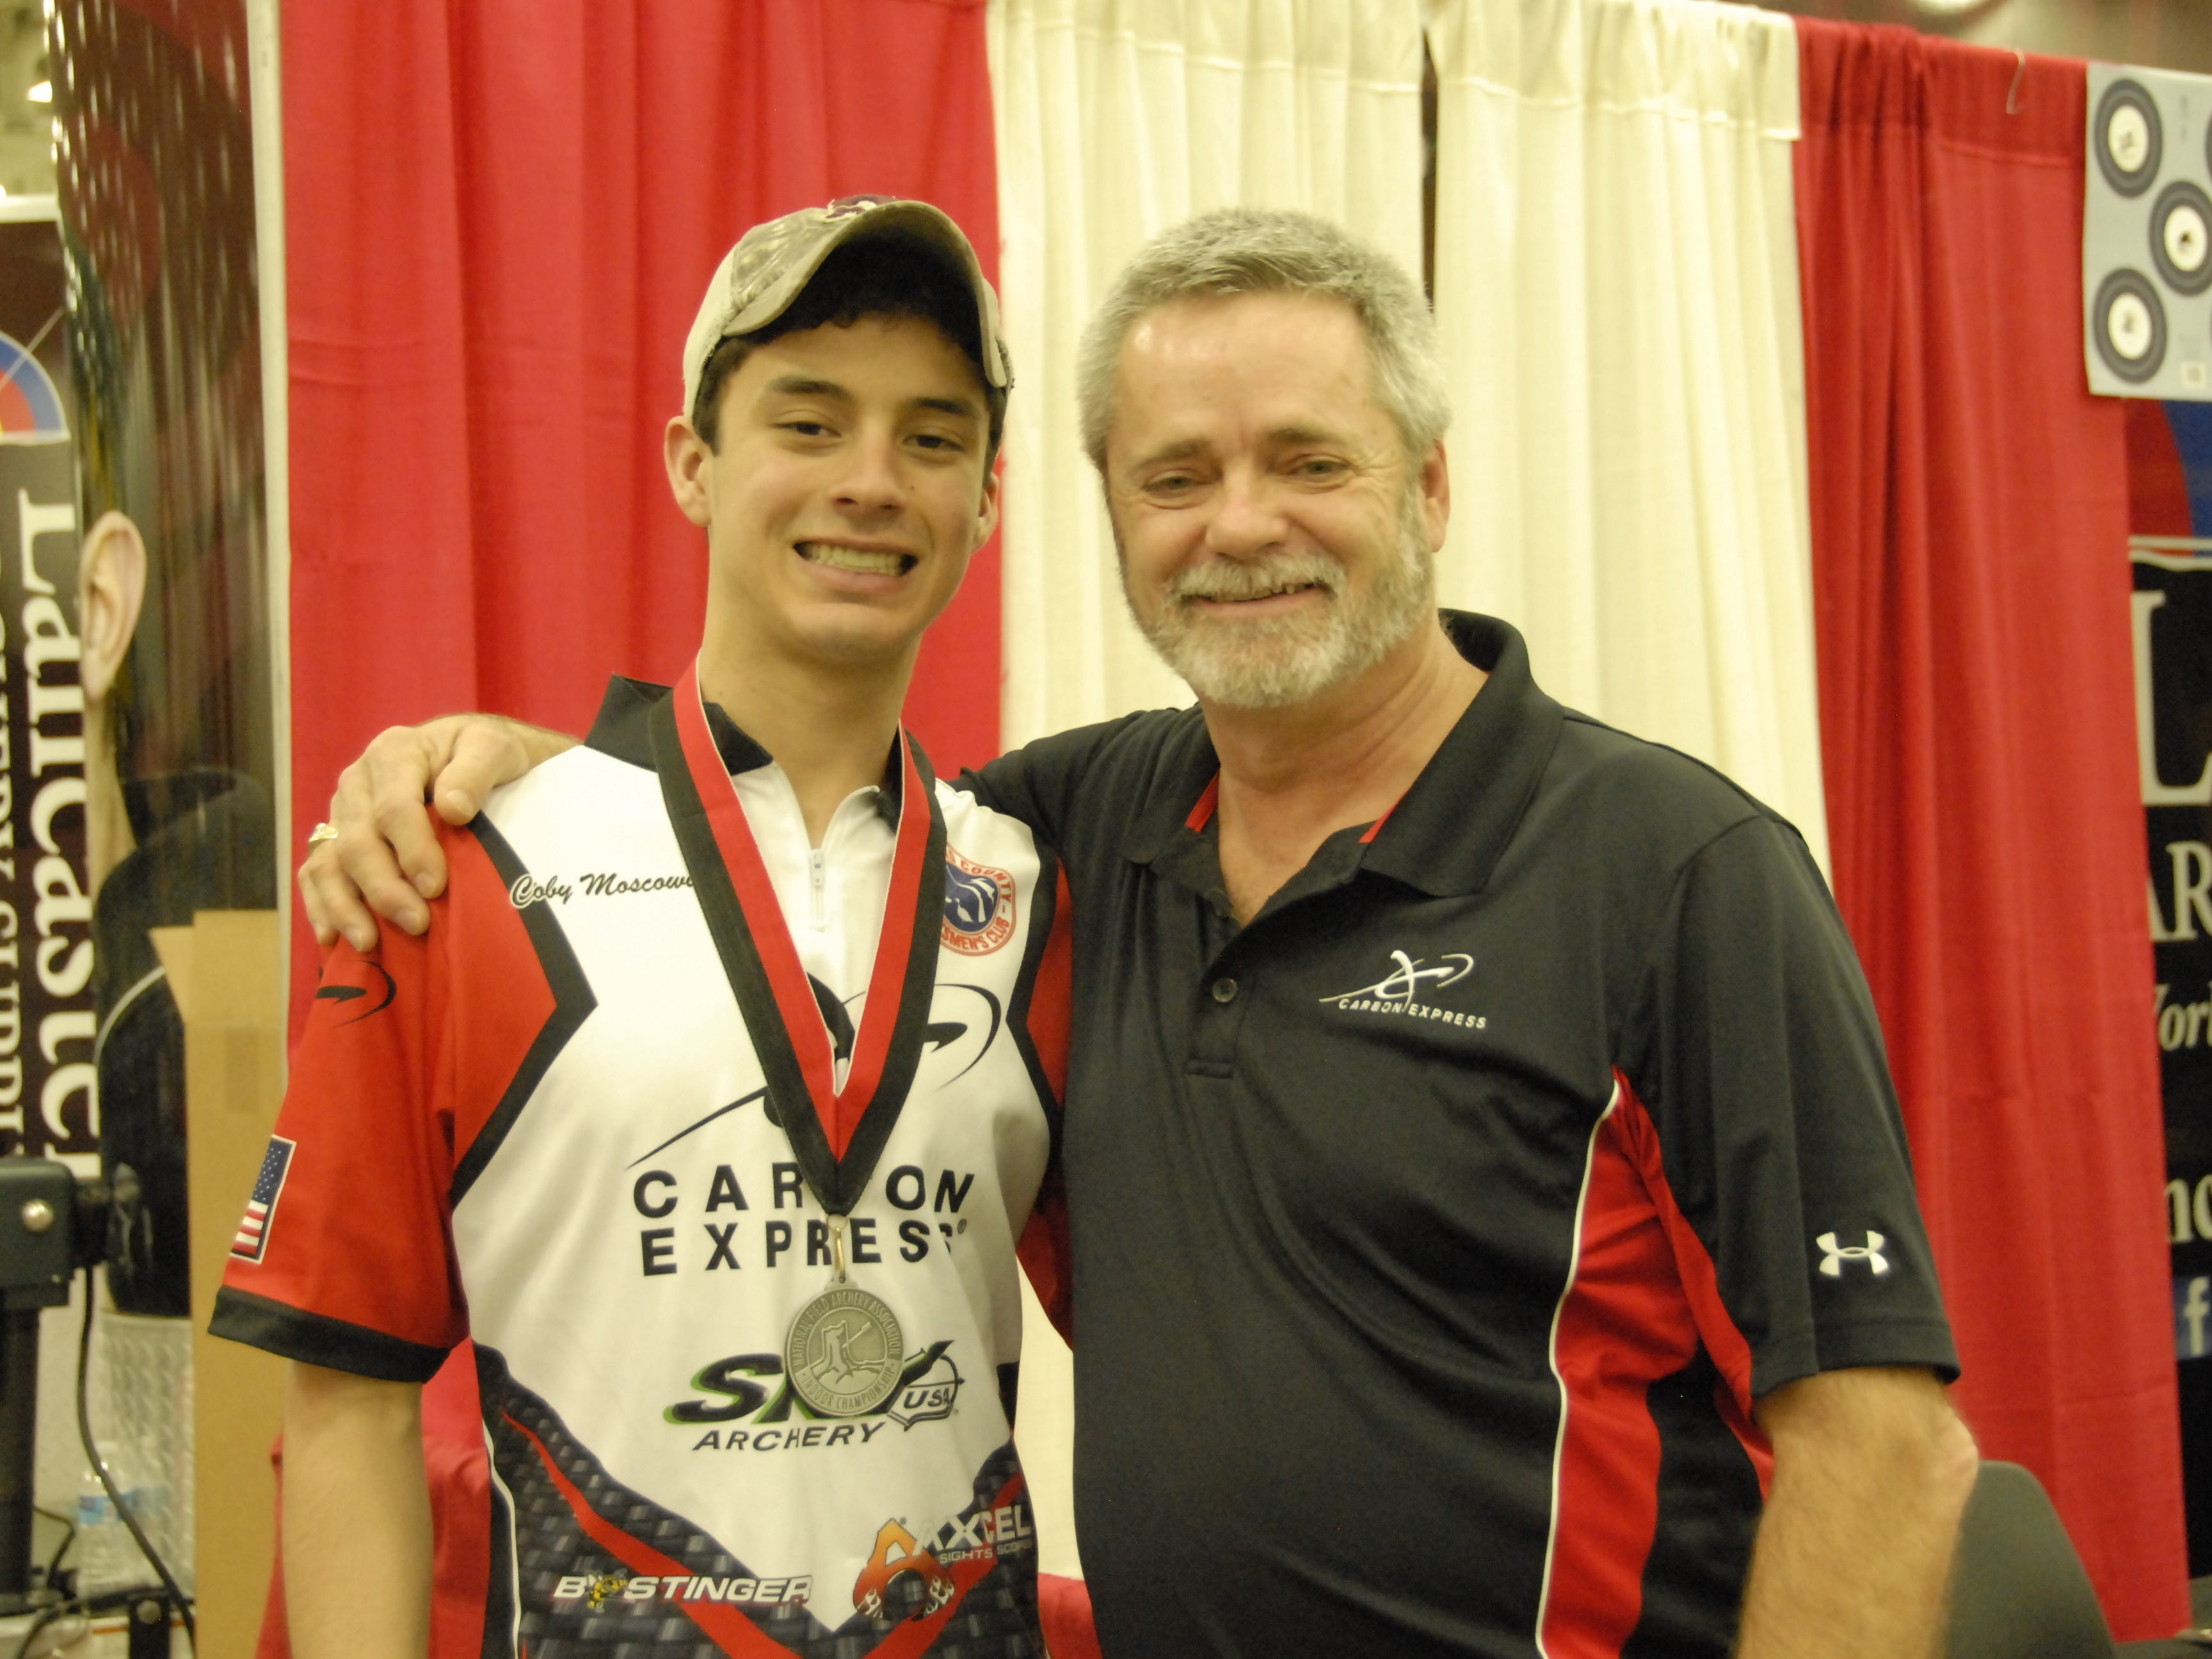 Seaholm High School student Coby Moscowitz is pictured with his archery coach Jim Morrow.